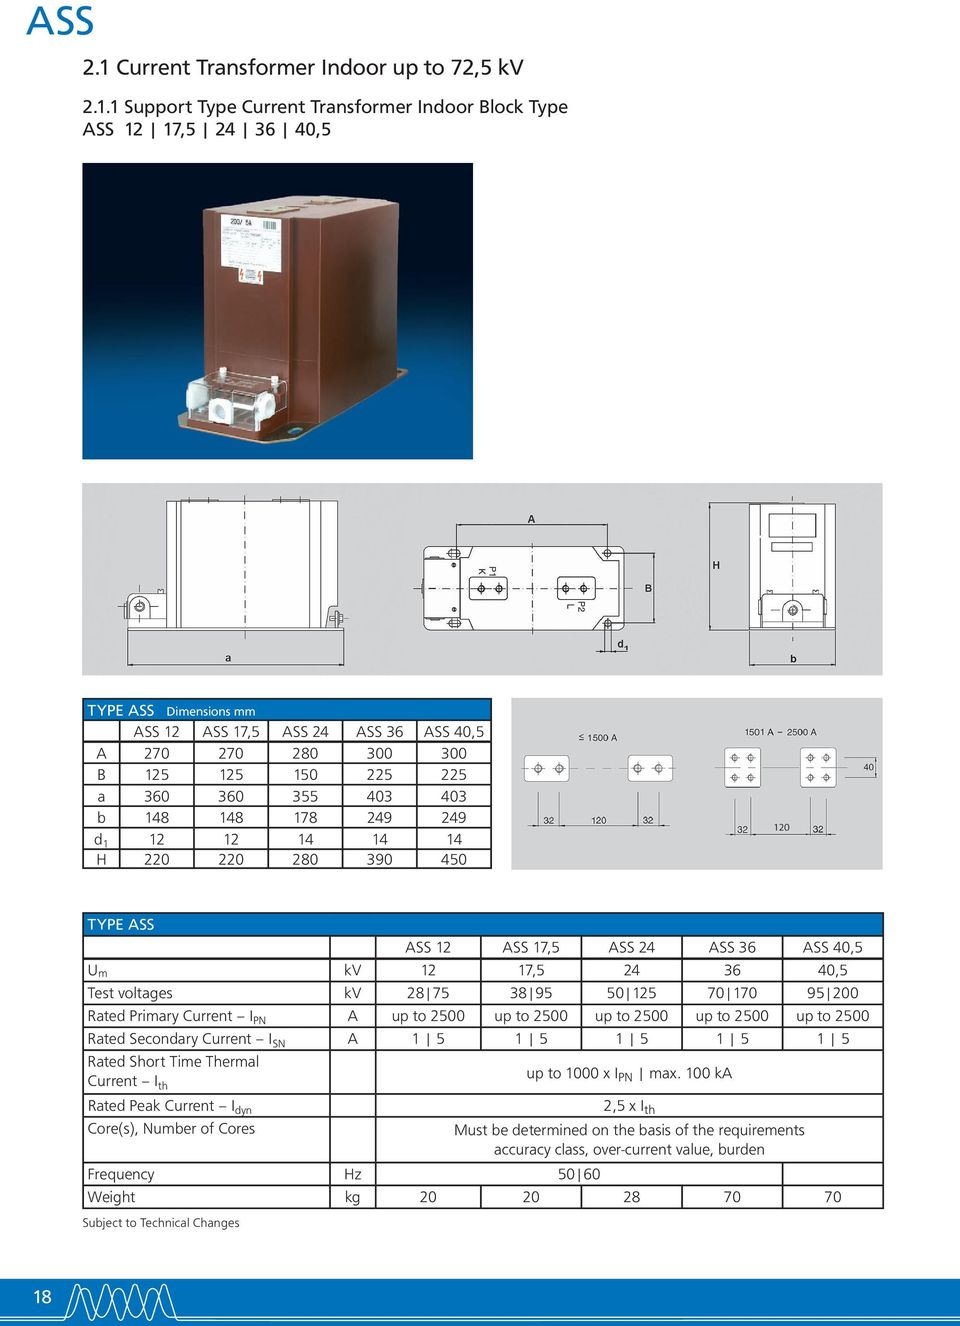 hight resolution of 1 support type current transformer indoor block type ass 12 17 5 24 36 40